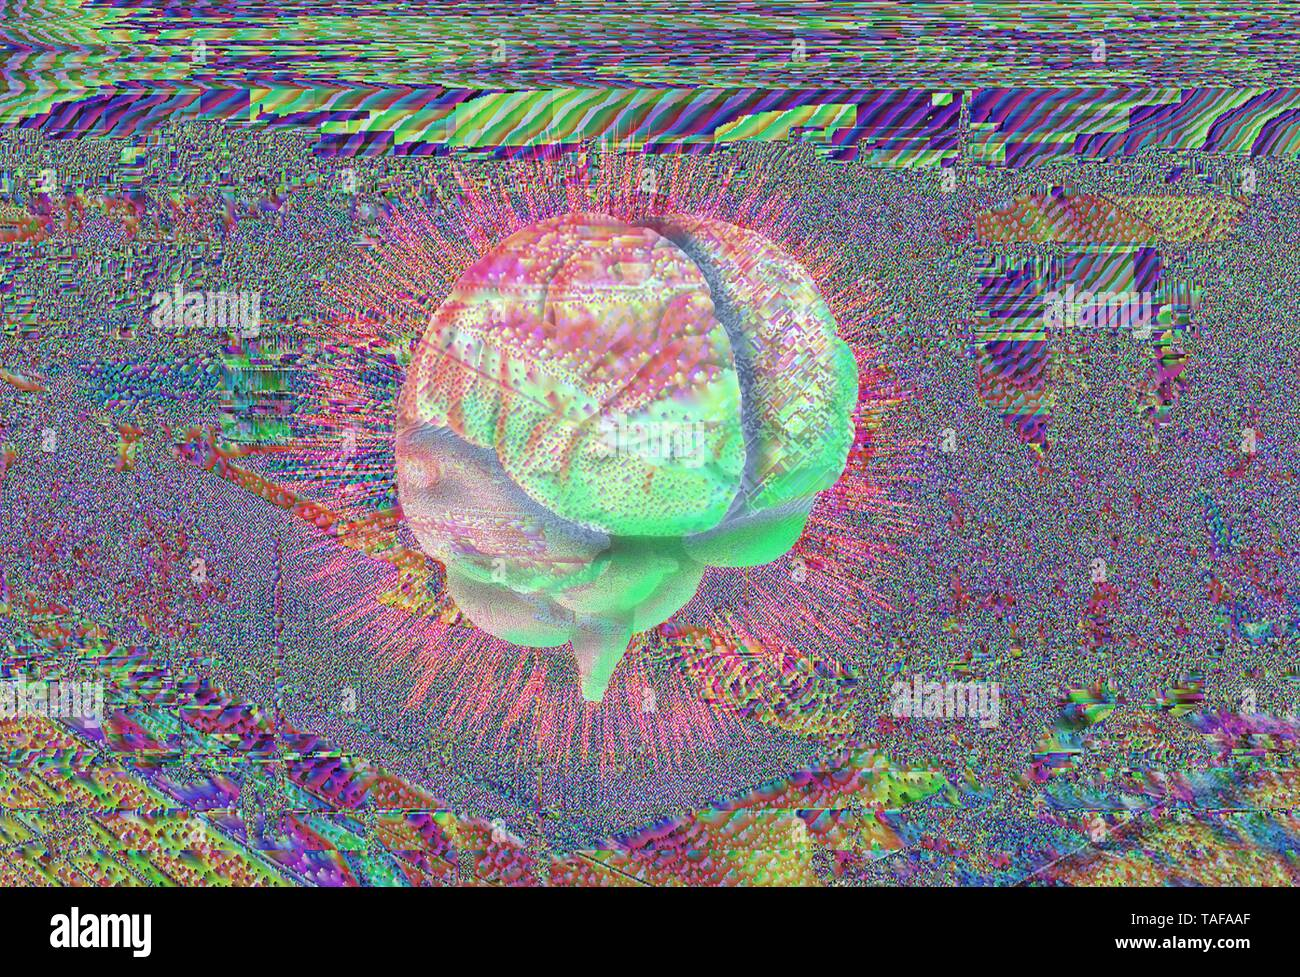 Overstimulated brain in chaotic landscape, illustration - Stock Image